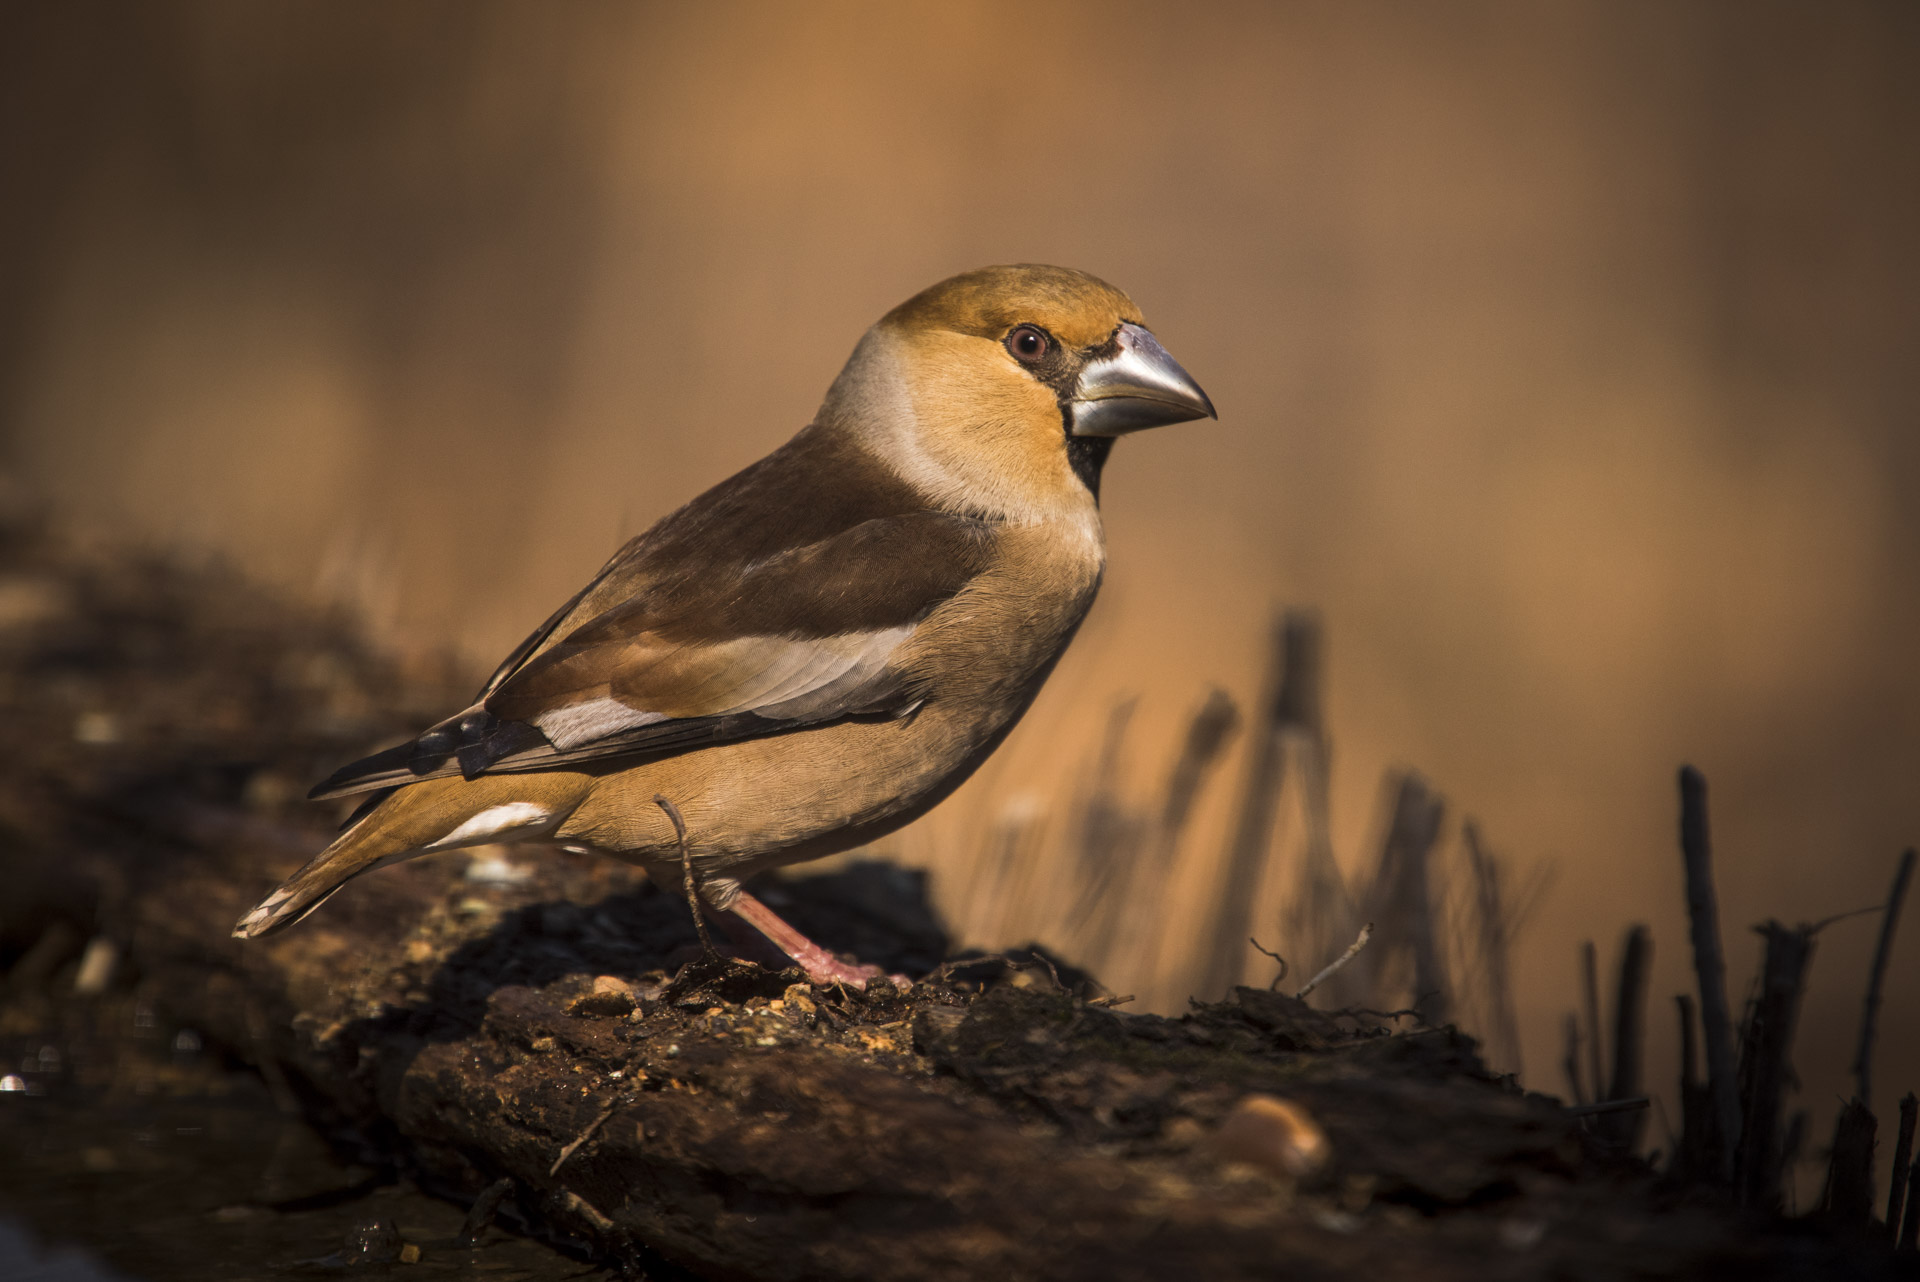 Hawfinch- Coccothraustes coccothraustes